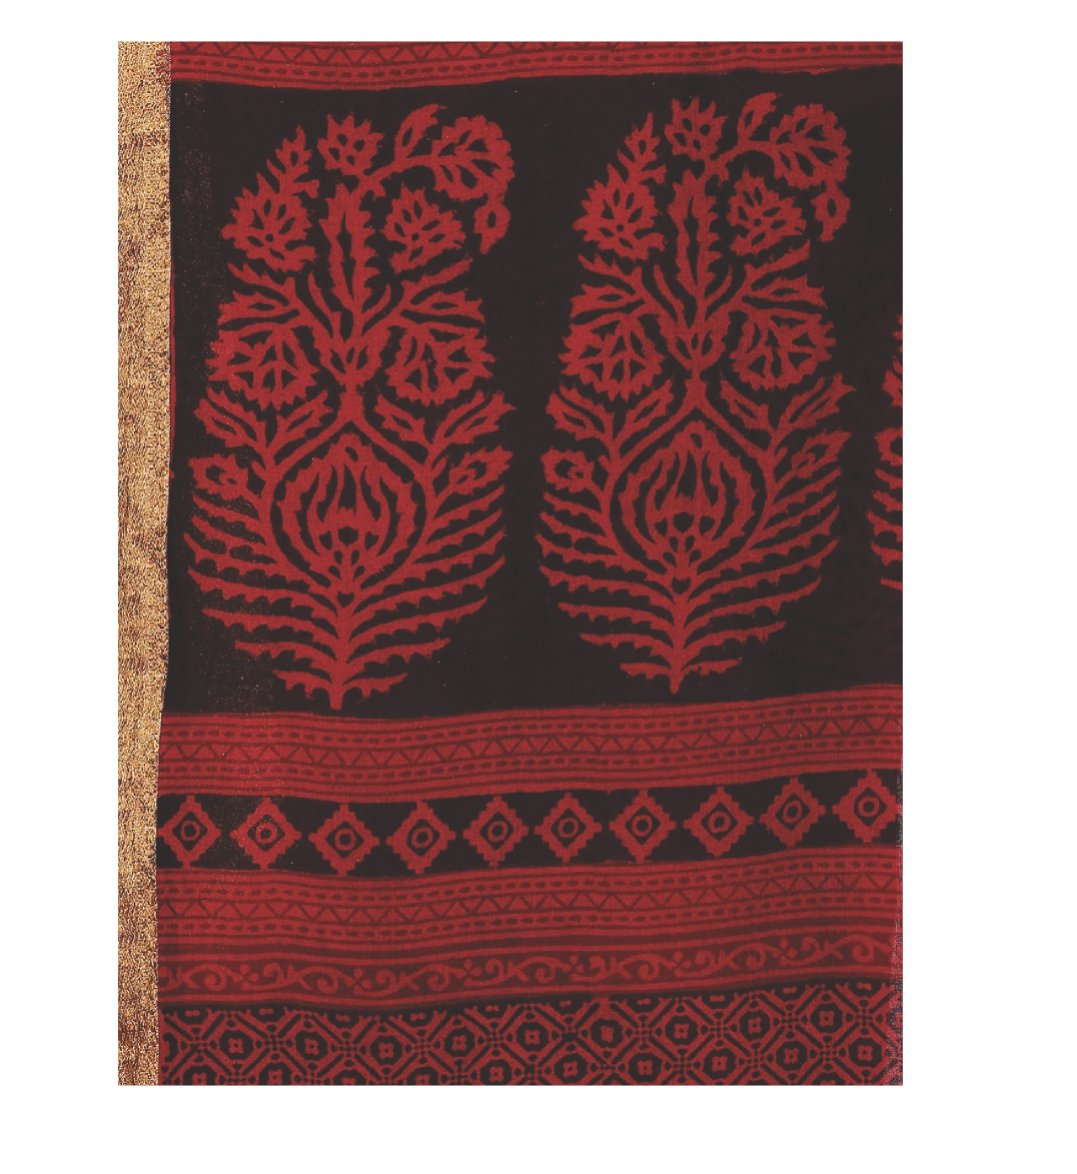 Red Cotton Hand Block Bagh Print Handcrafted Saree-Saree-Kalakari India-ZIBASA0048-Bagh, Cotton, Geographical Indication, Hand Blocks, Hand Crafted, Heritage Prints, Natural Dyes, Sarees, Sustainable Fabrics-[Linen,Ethnic,wear,Fashionista,Handloom,Handicraft,Indigo,blockprint,block,print,Cotton,Chanderi,Blue, latest,classy,party,bollywood,trendy,summer,style,traditional,formal,elegant,unique,style,hand,block,print, dabu,booti,gift,present,glamorous,affordable,collectible,Sari,Saree,printed, holi